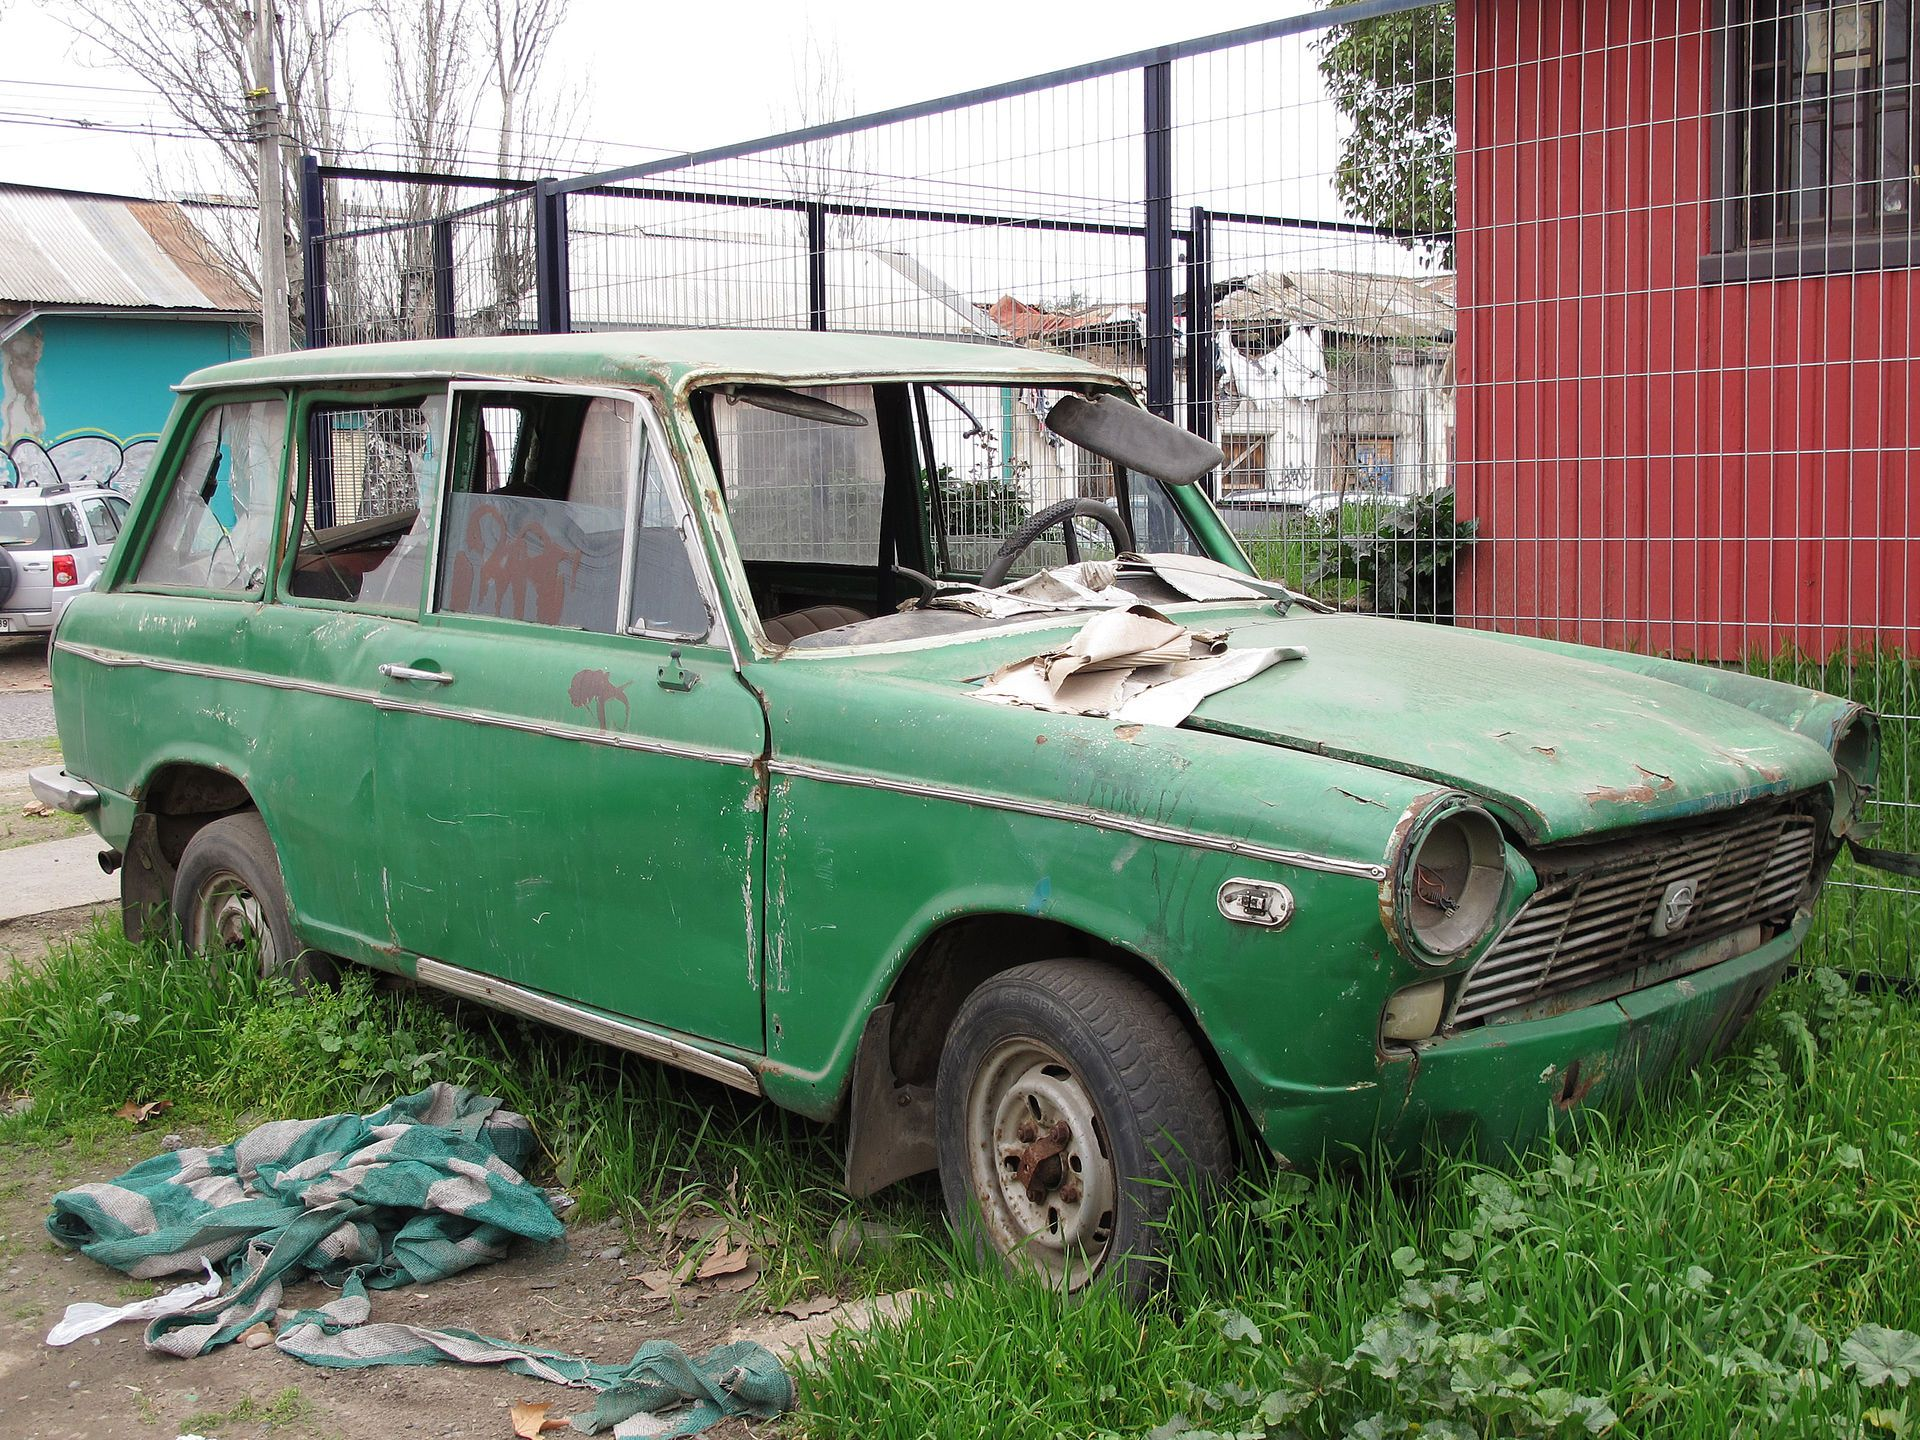 Daihatsu pagno Estate Abandoned cars Pinterest